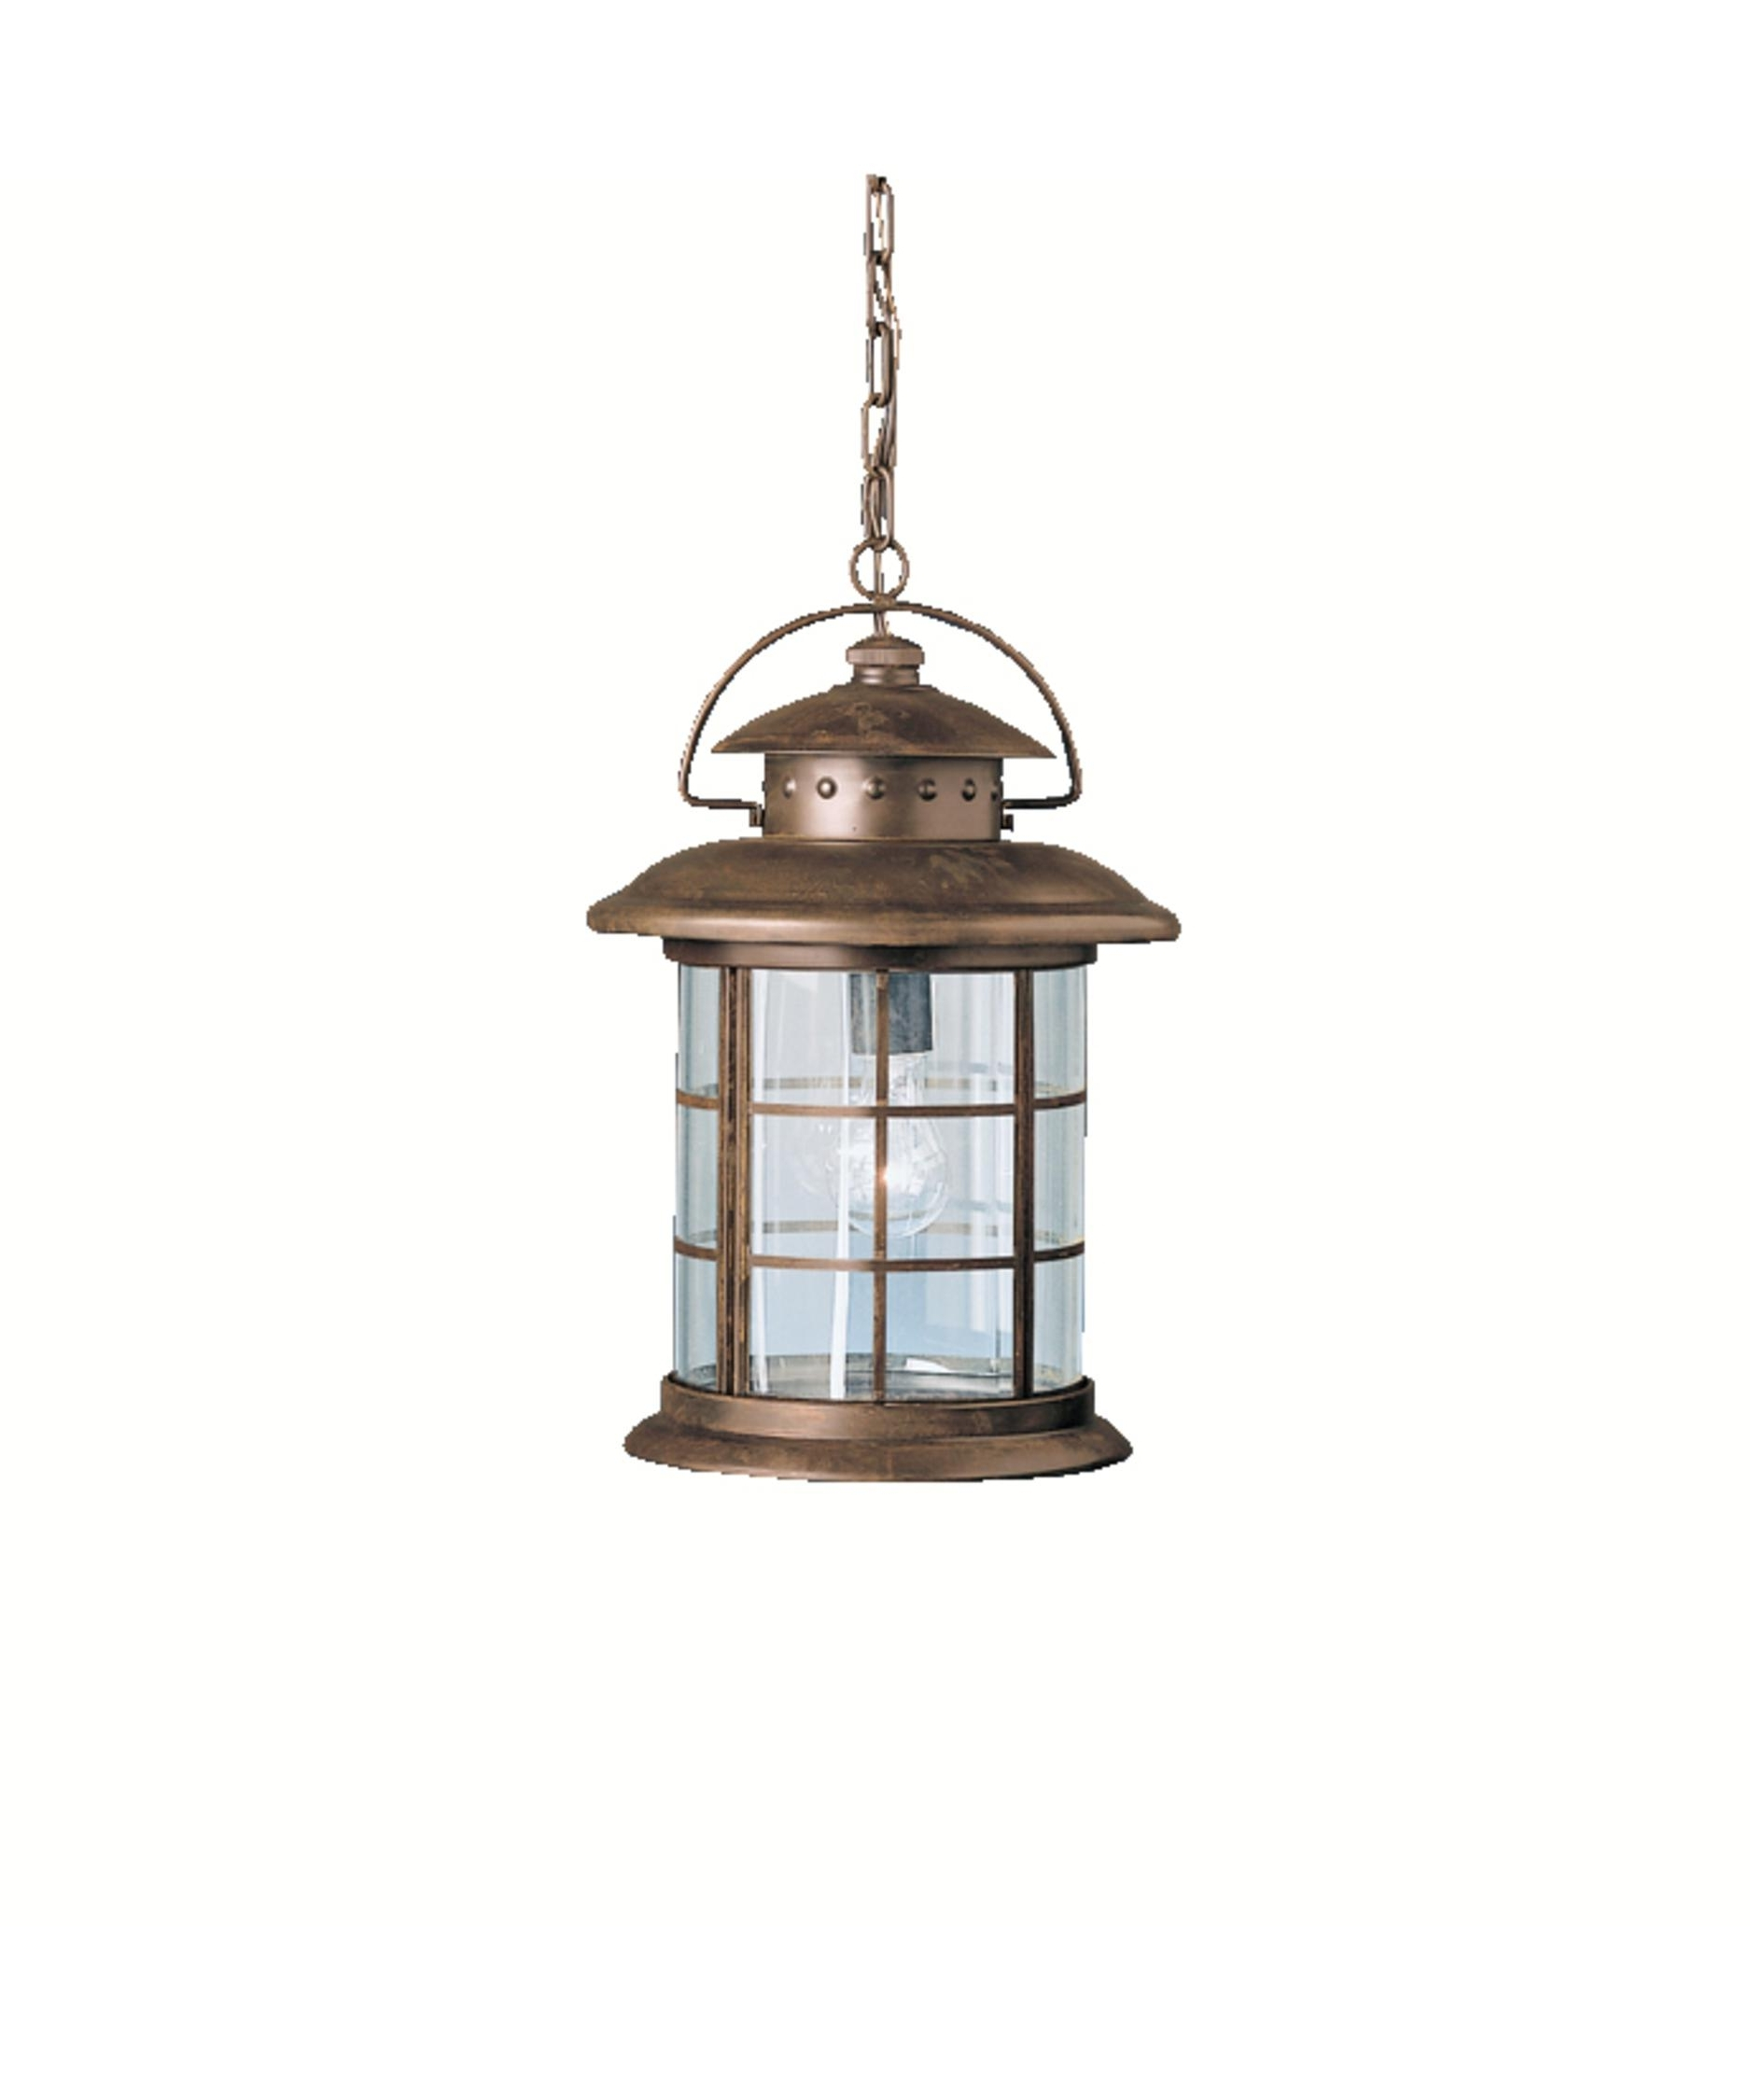 Kichler 9870 Rustic 11 Inch Wide 1 Light Outdoor Hanging Lantern Throughout Fashionable Rustic Outdoor Hanging Lights (Gallery 4 of 20)